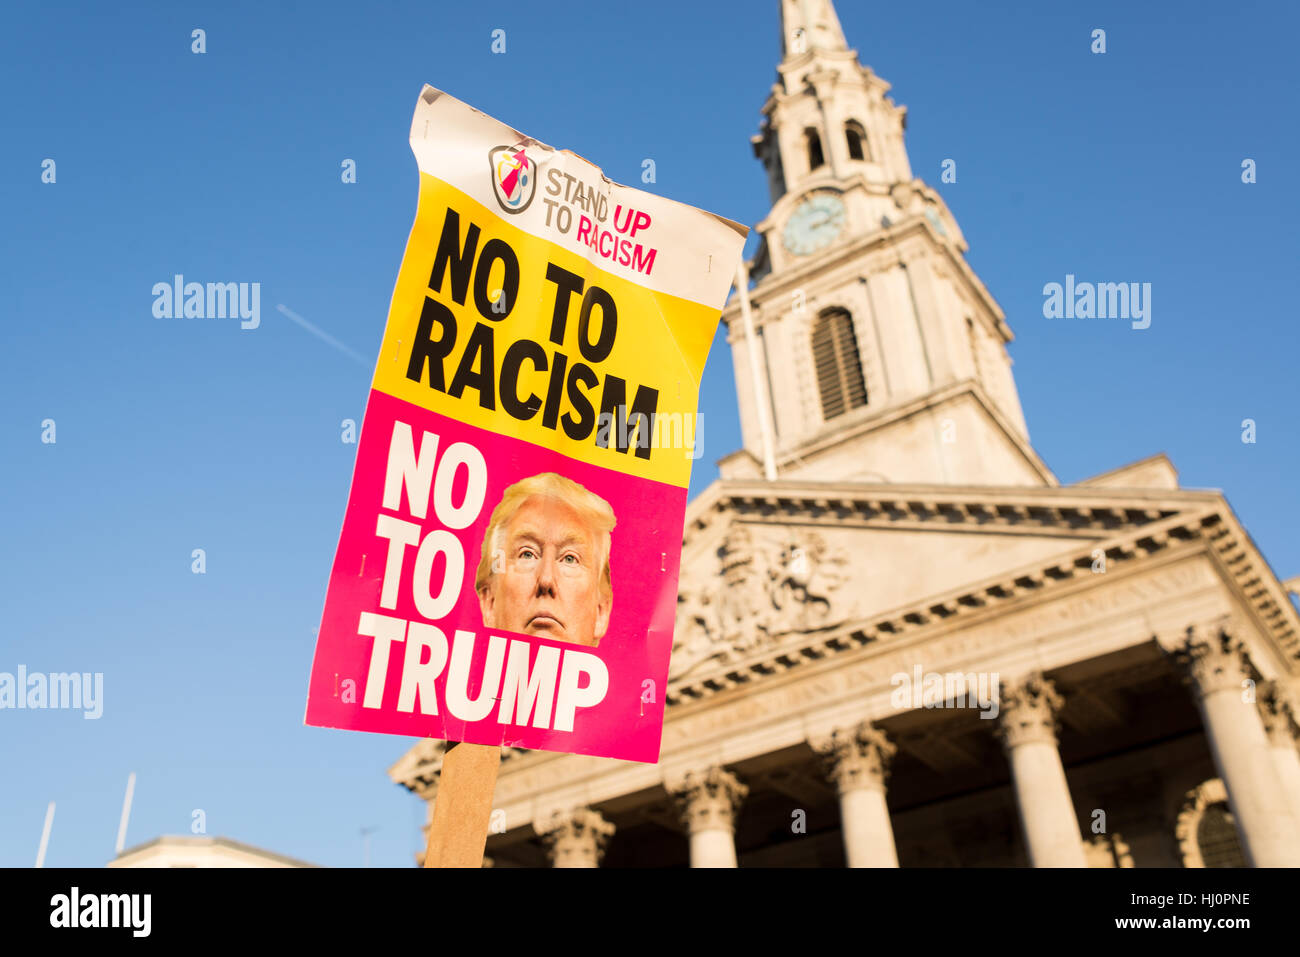 London, UK - 21 January 2017. Protest sign from Stand up to racism against Donald Trump. Thousands of protesters - Stock Image